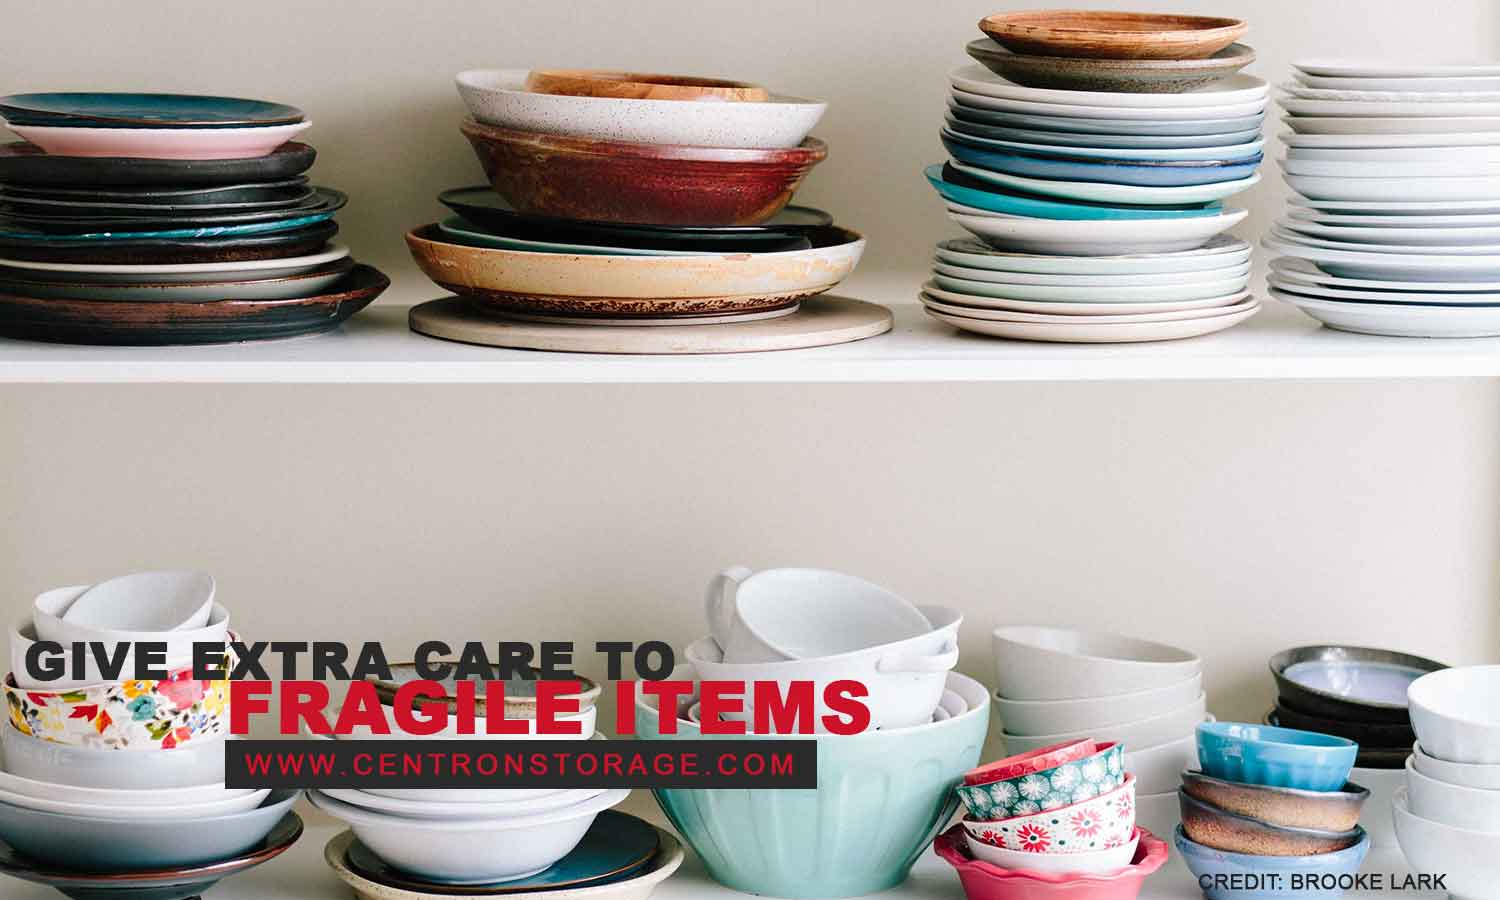 Give extra care to fragile items